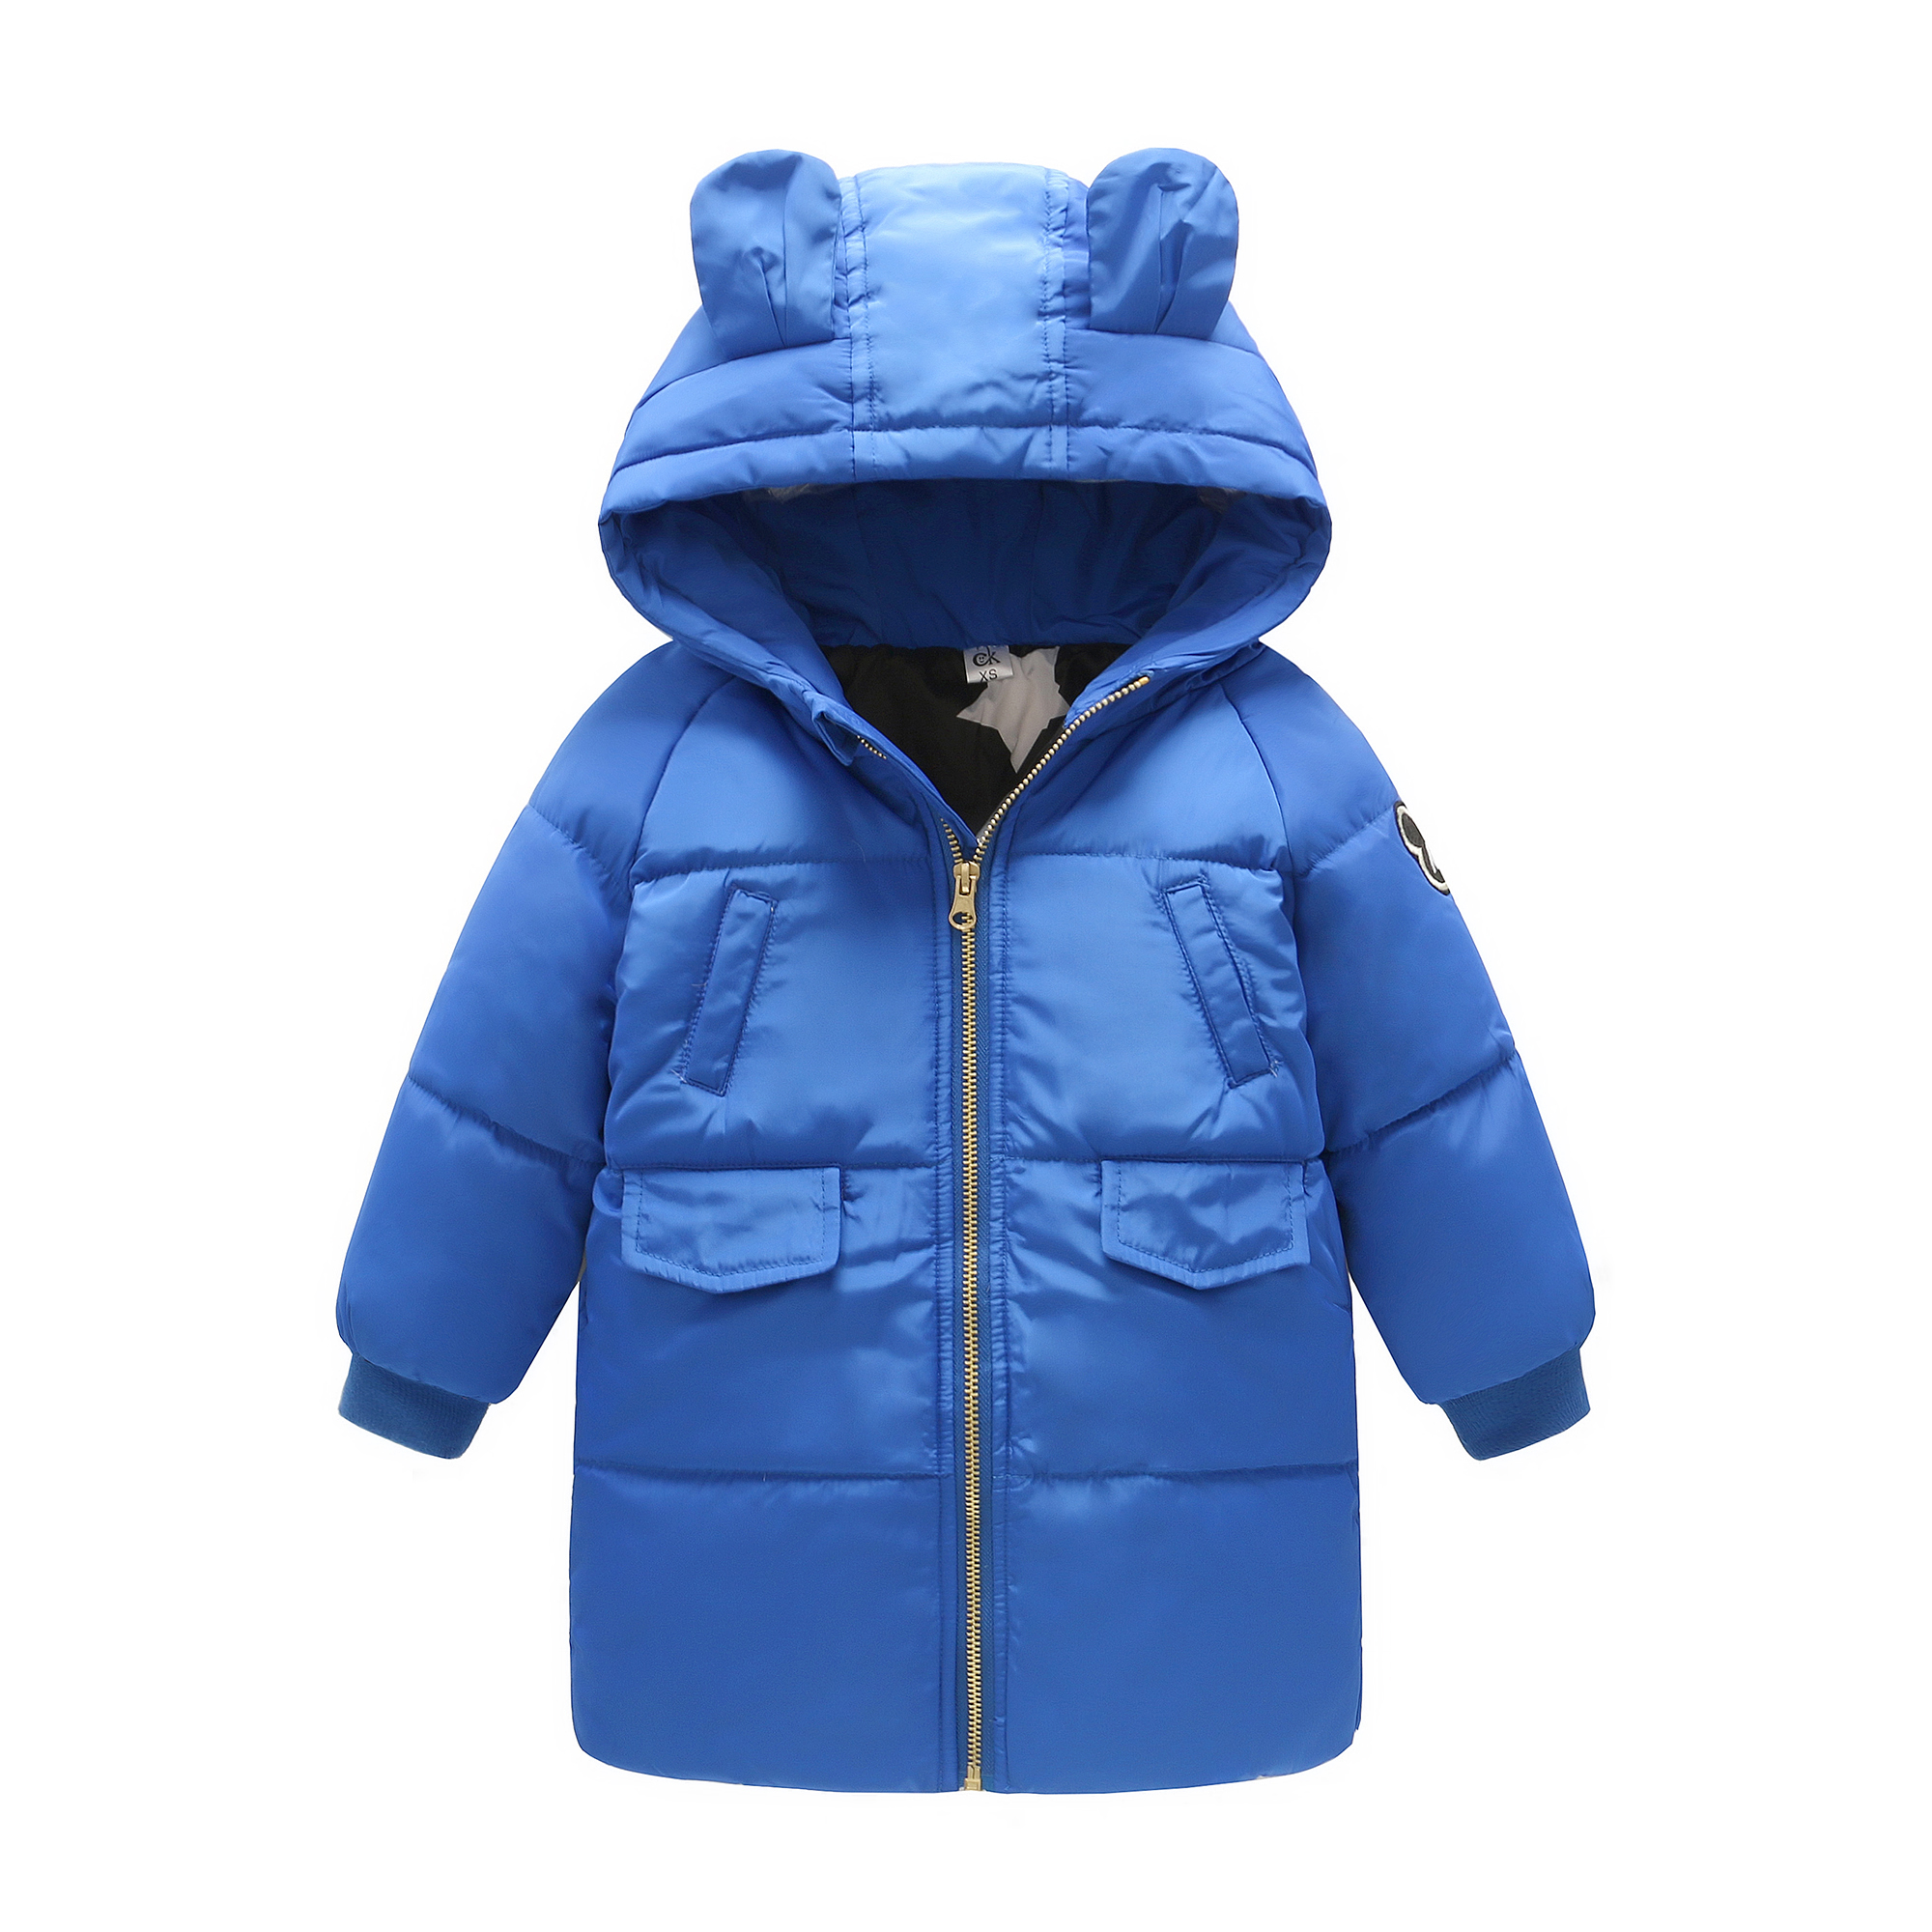 2017 winter children midem long cute hooded thicken jackets girls wadded trench coats kids parkas down boys outdoor coats years<br>